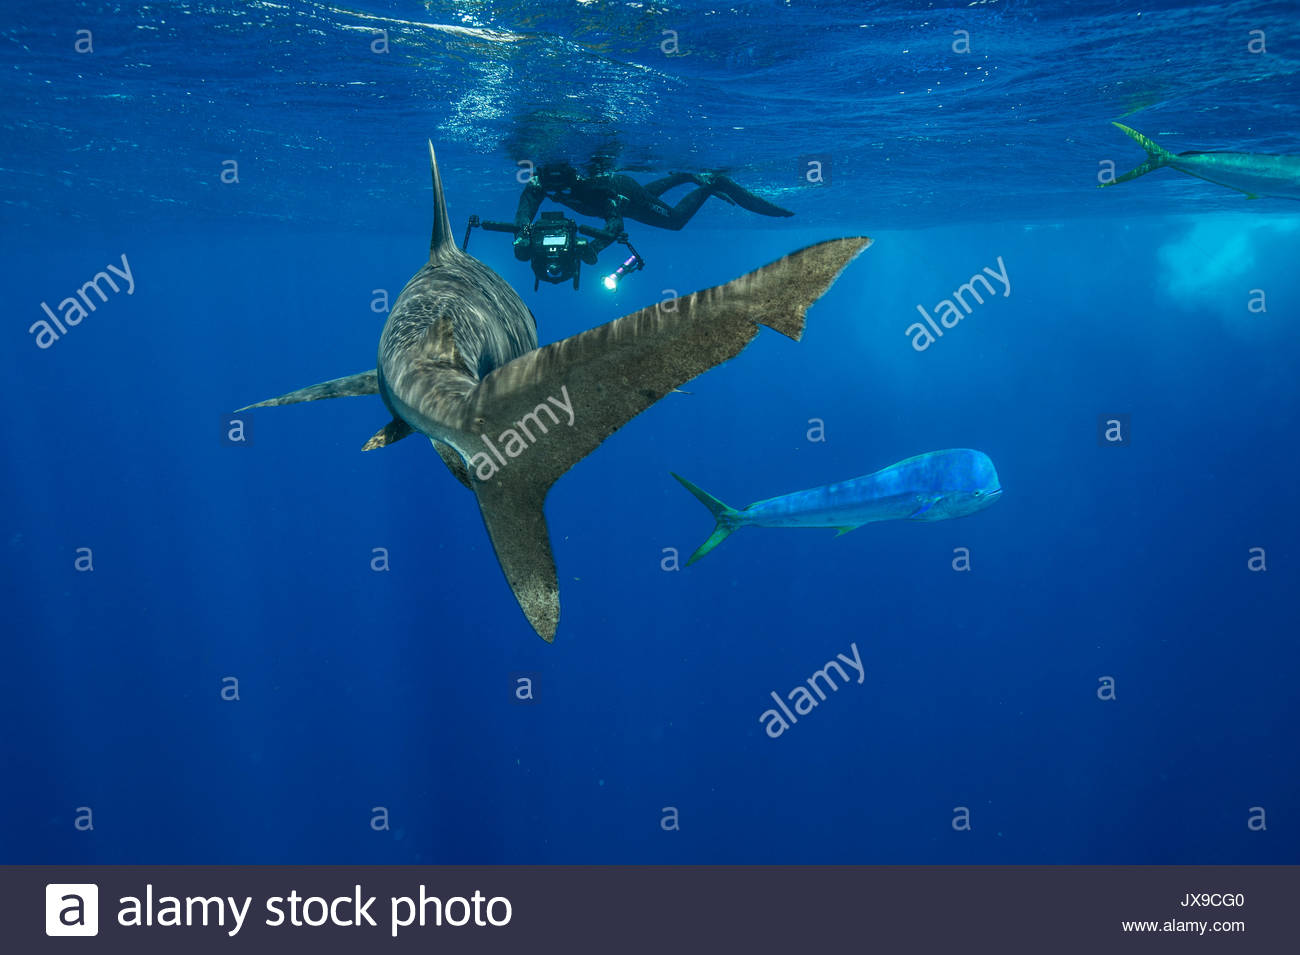 A photographer takes images of an oceanic whitetip shark, Carcharhinus longimanus, swimming in the waters off Cat Island in the Bahamas. - Stock Image